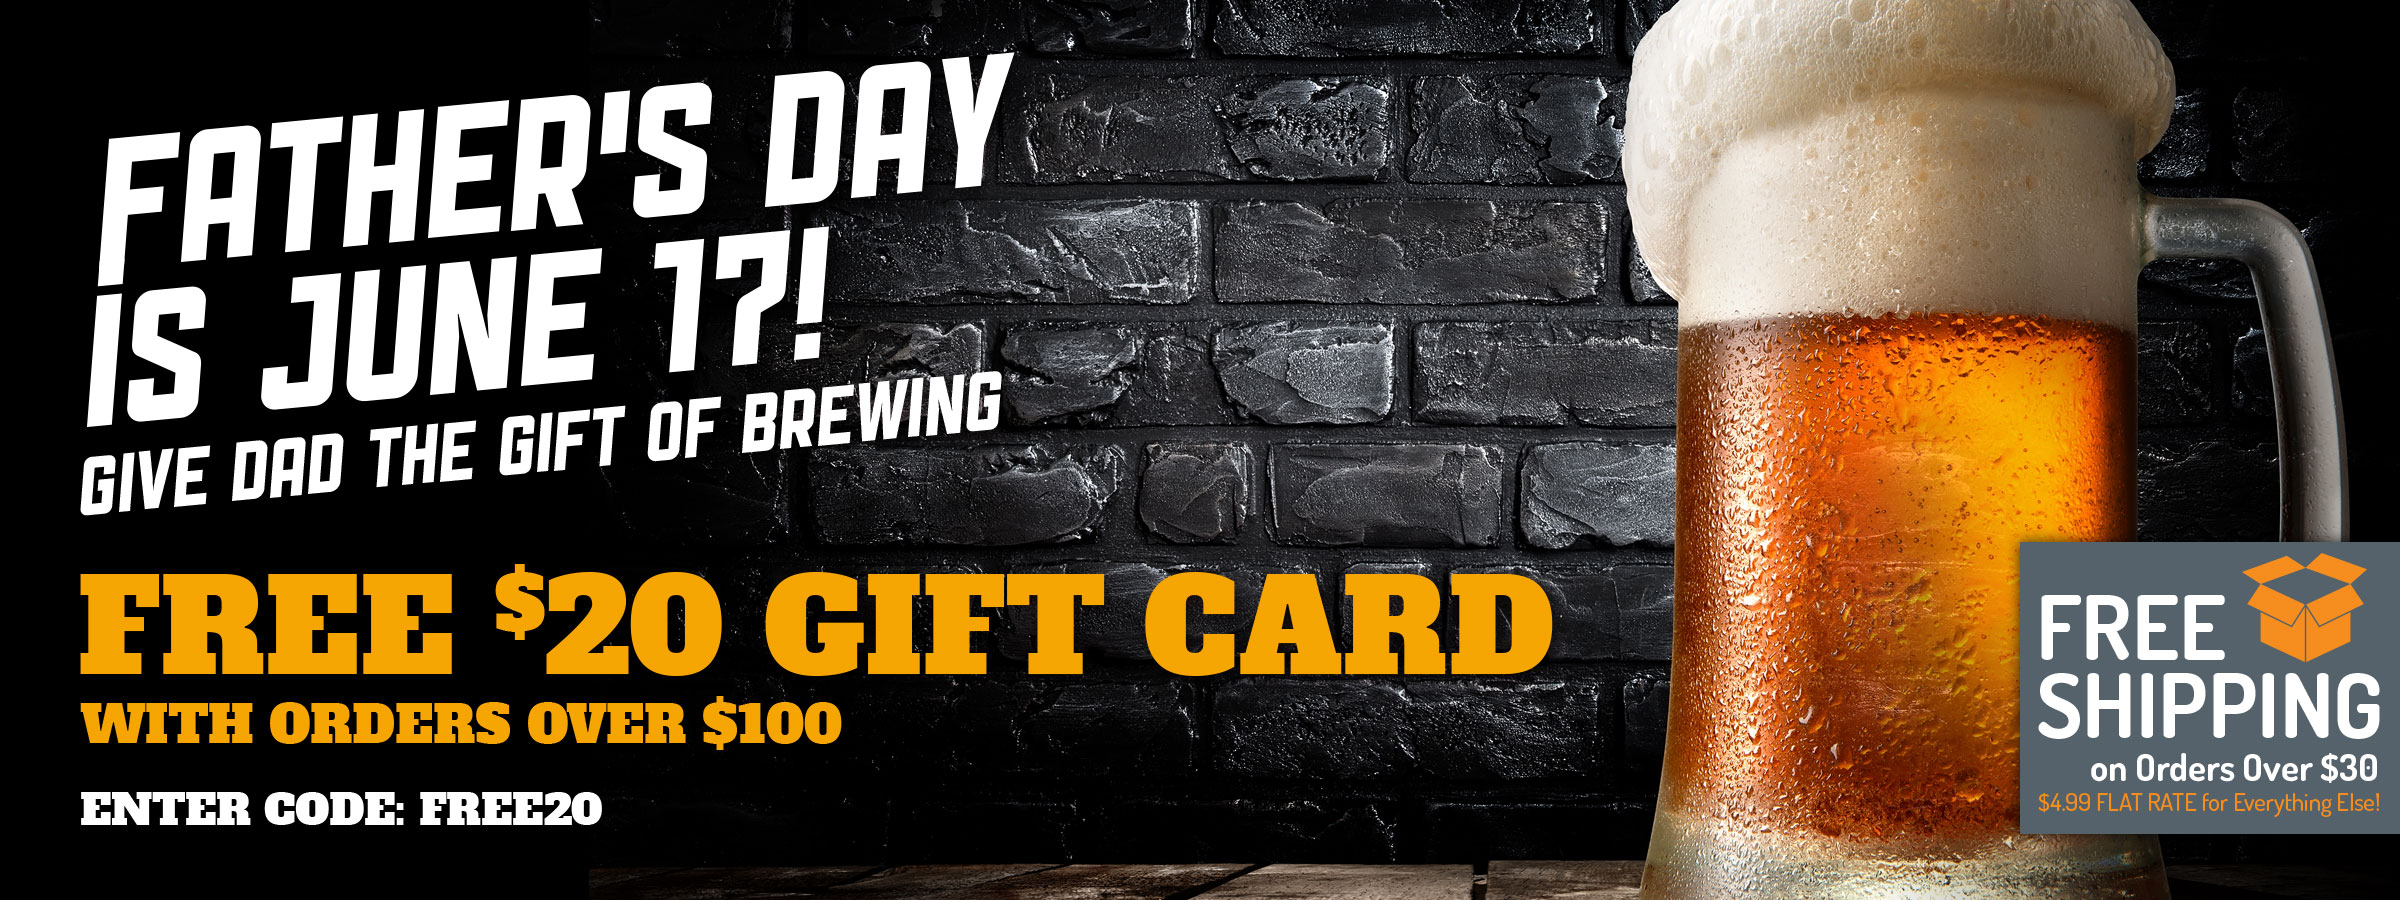 Spend $100, get a free $20 gift card.